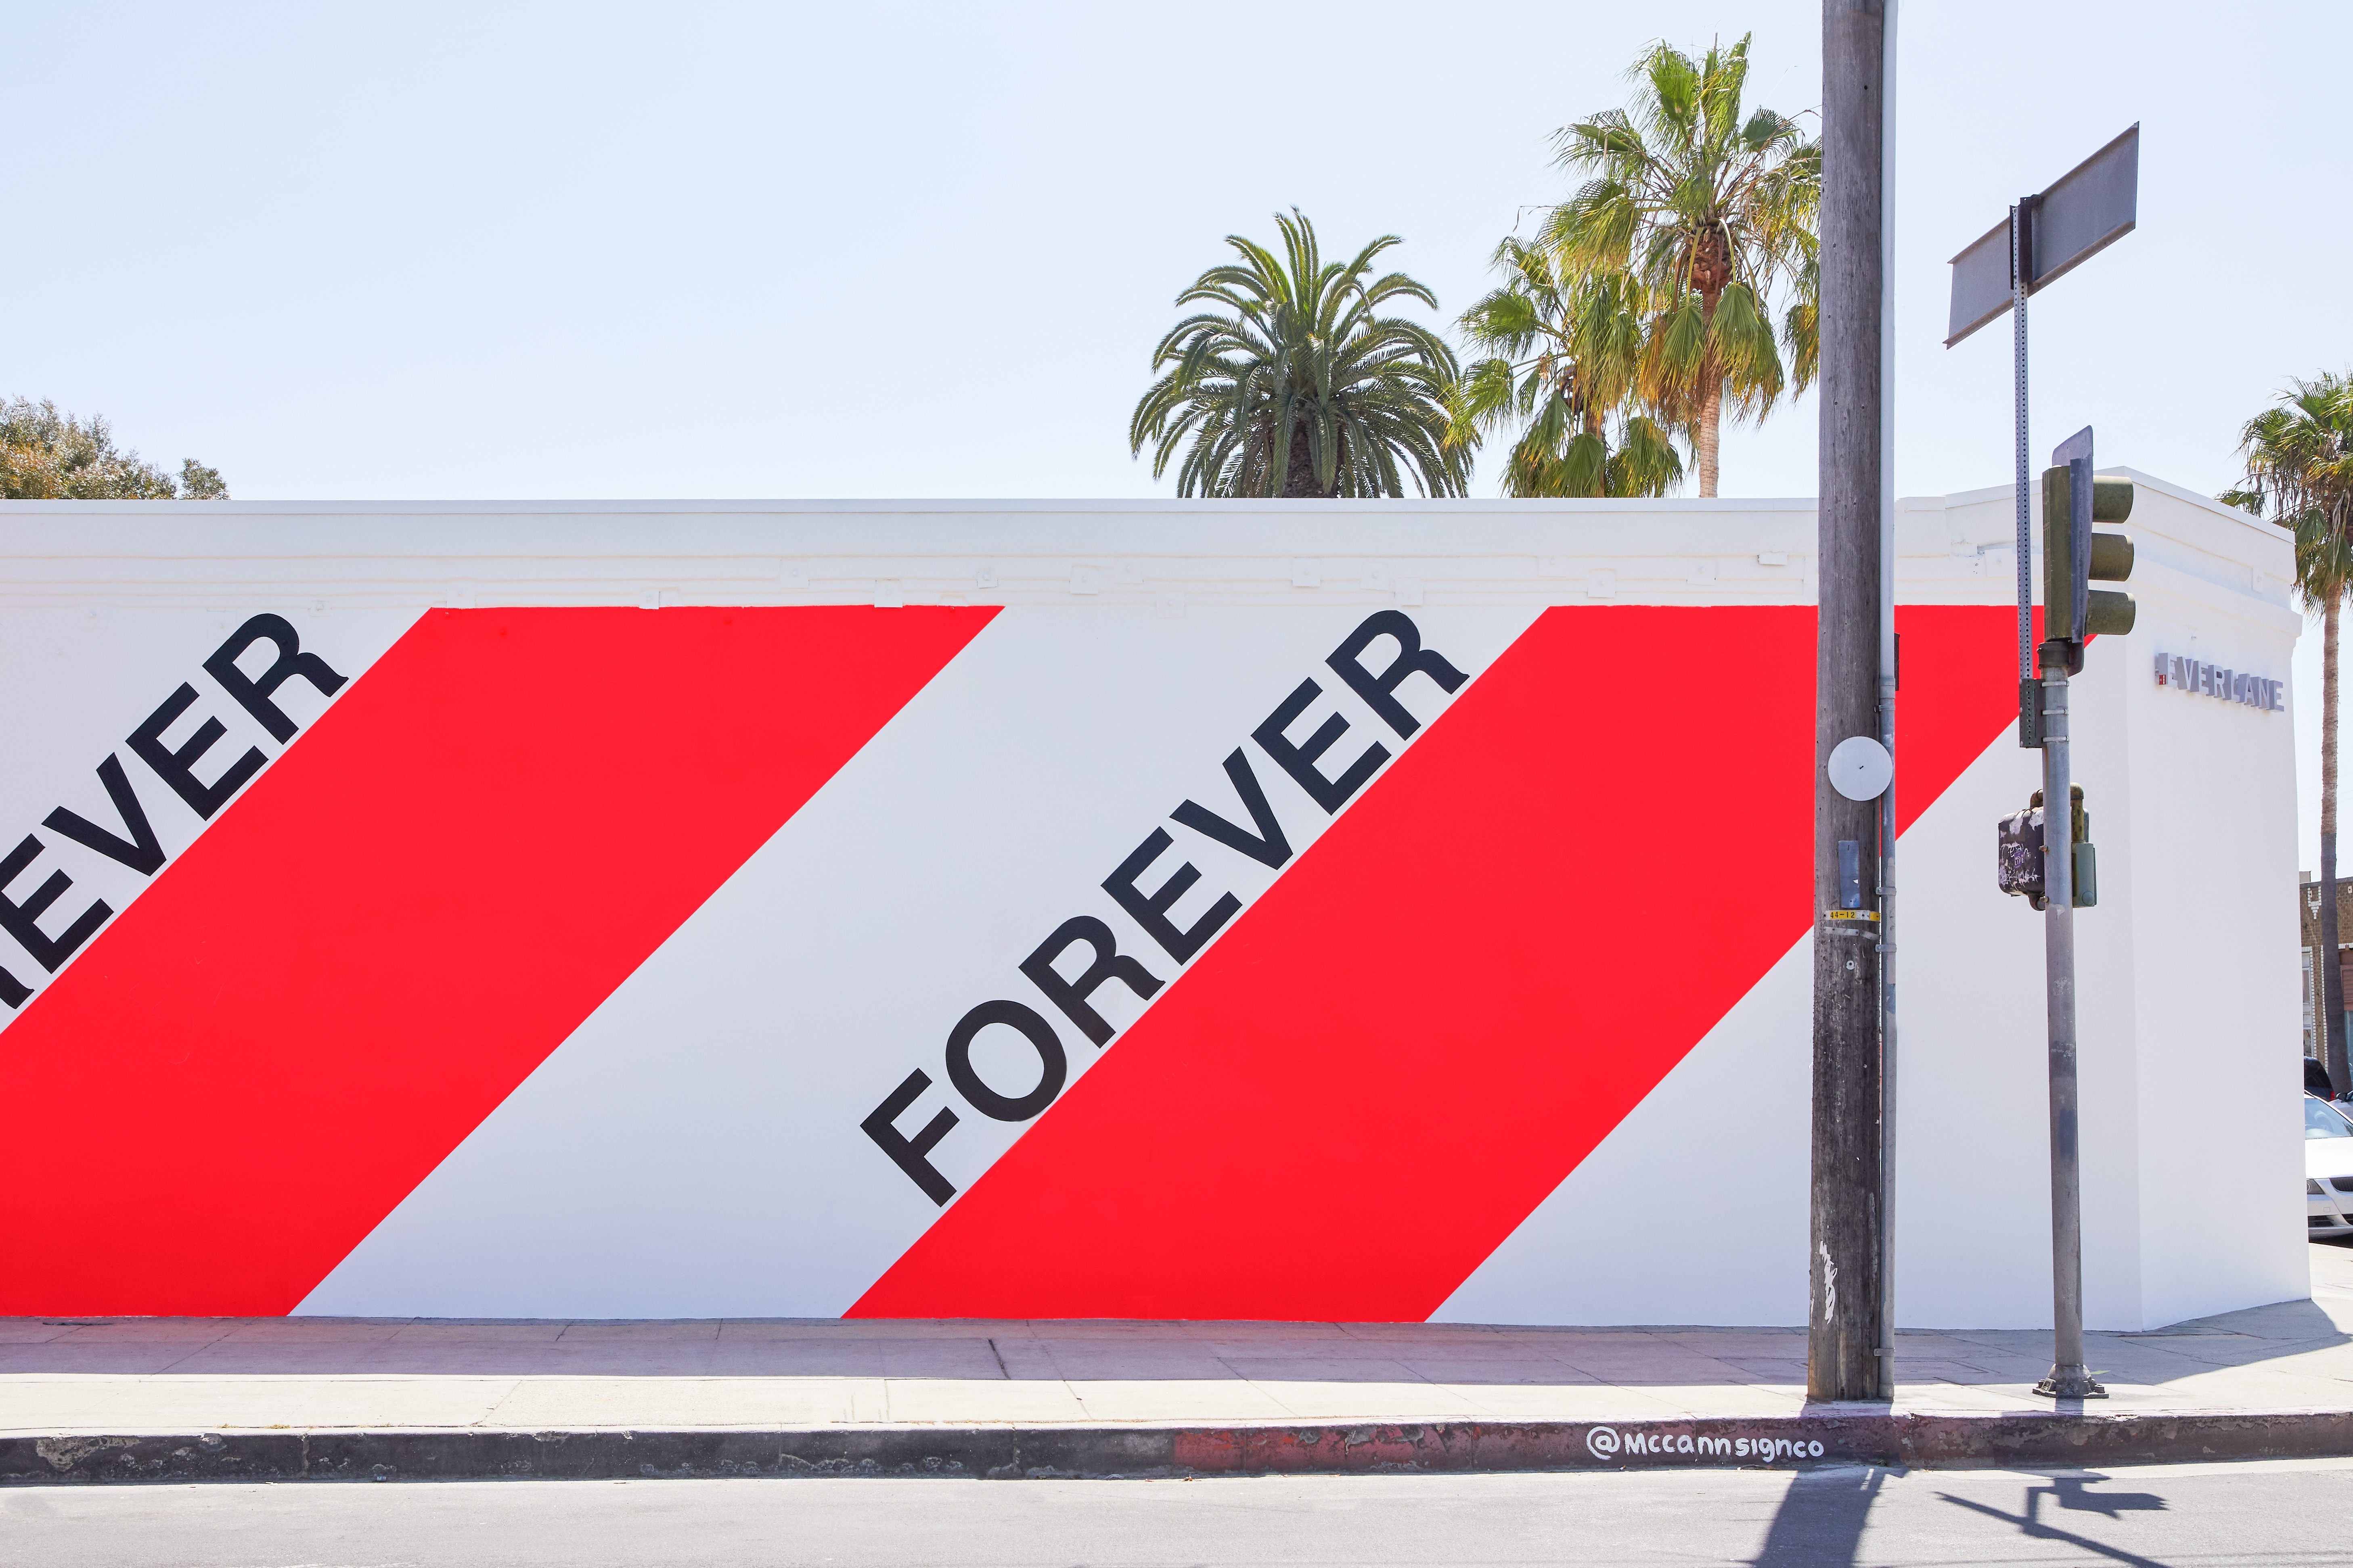 Everlane's now closed store in Venice Beach, Los Angeles.